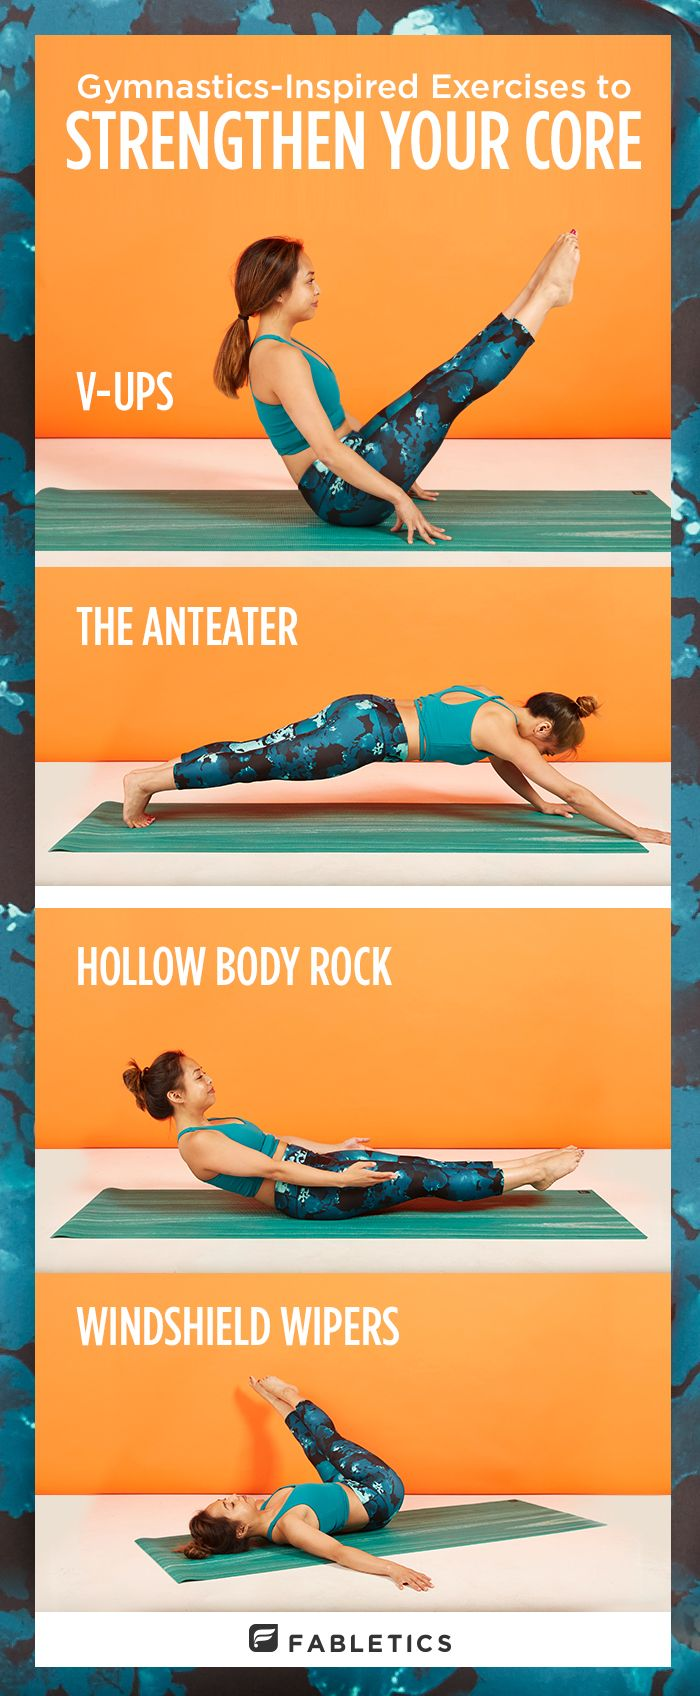 Work your core with these gymnastics-inspired workouts!